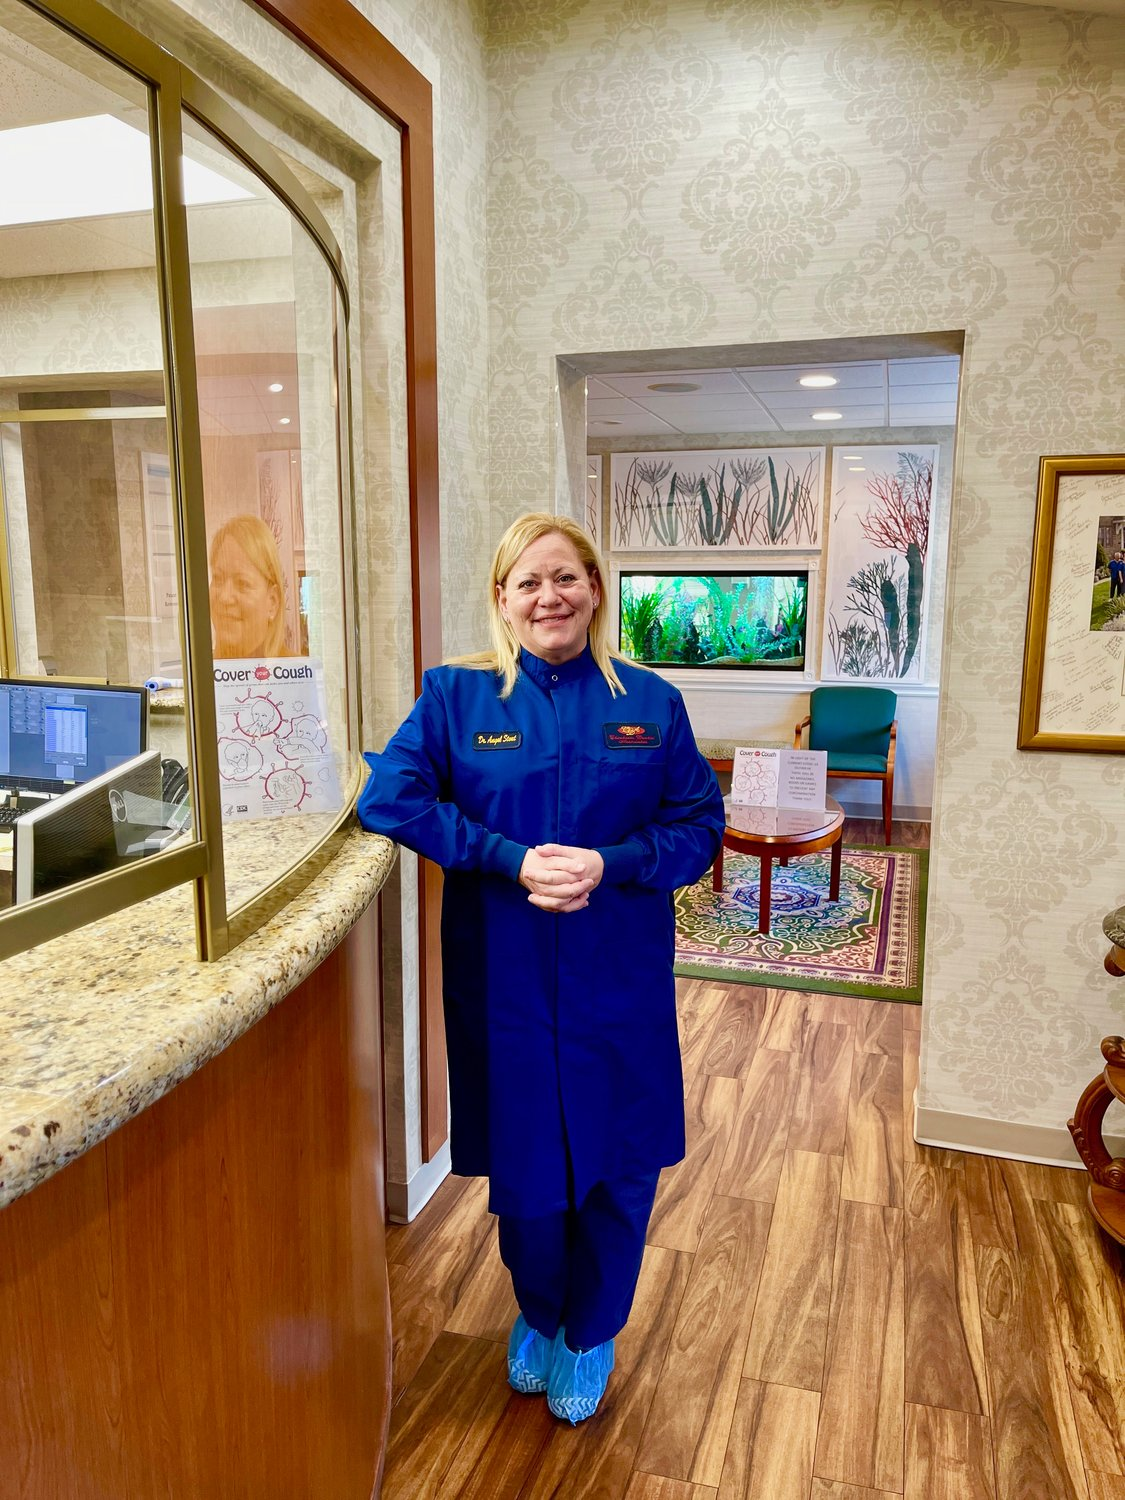 Dr. Angela Stout, of Chesheim Dental Associates in Erdenheim, had to shut down her practice for almost four months, except for emergencies, because of the pandemic.